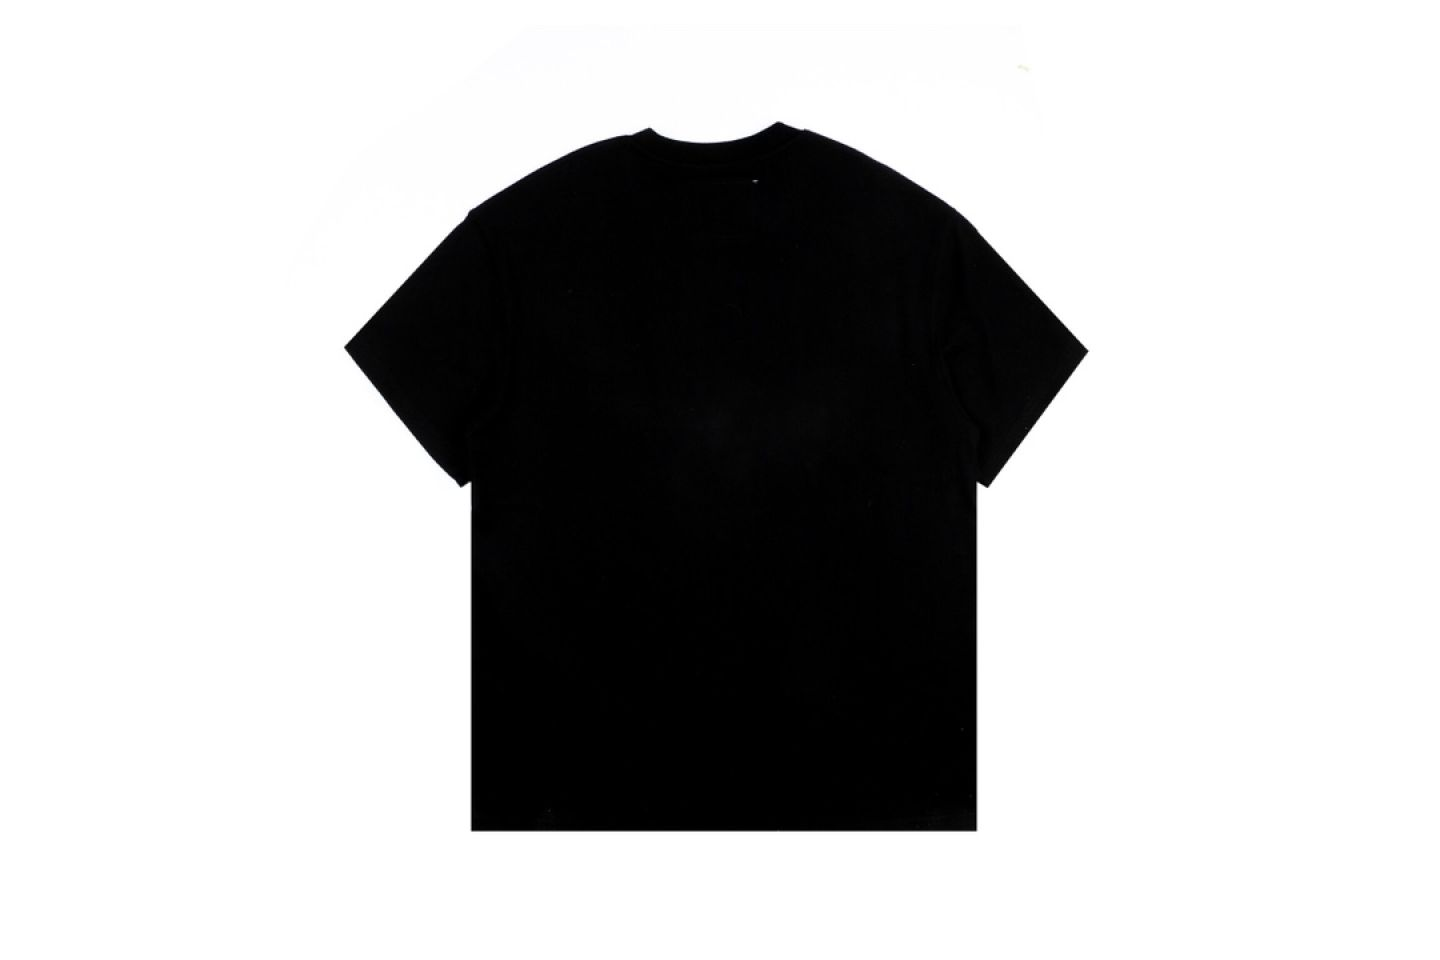 Shirt A-COLD-WALL cold wall oil painting photo short sleeve black 5 a_cold_wall_cold_wall_oil_painting_photo_short_sleeve_black__5